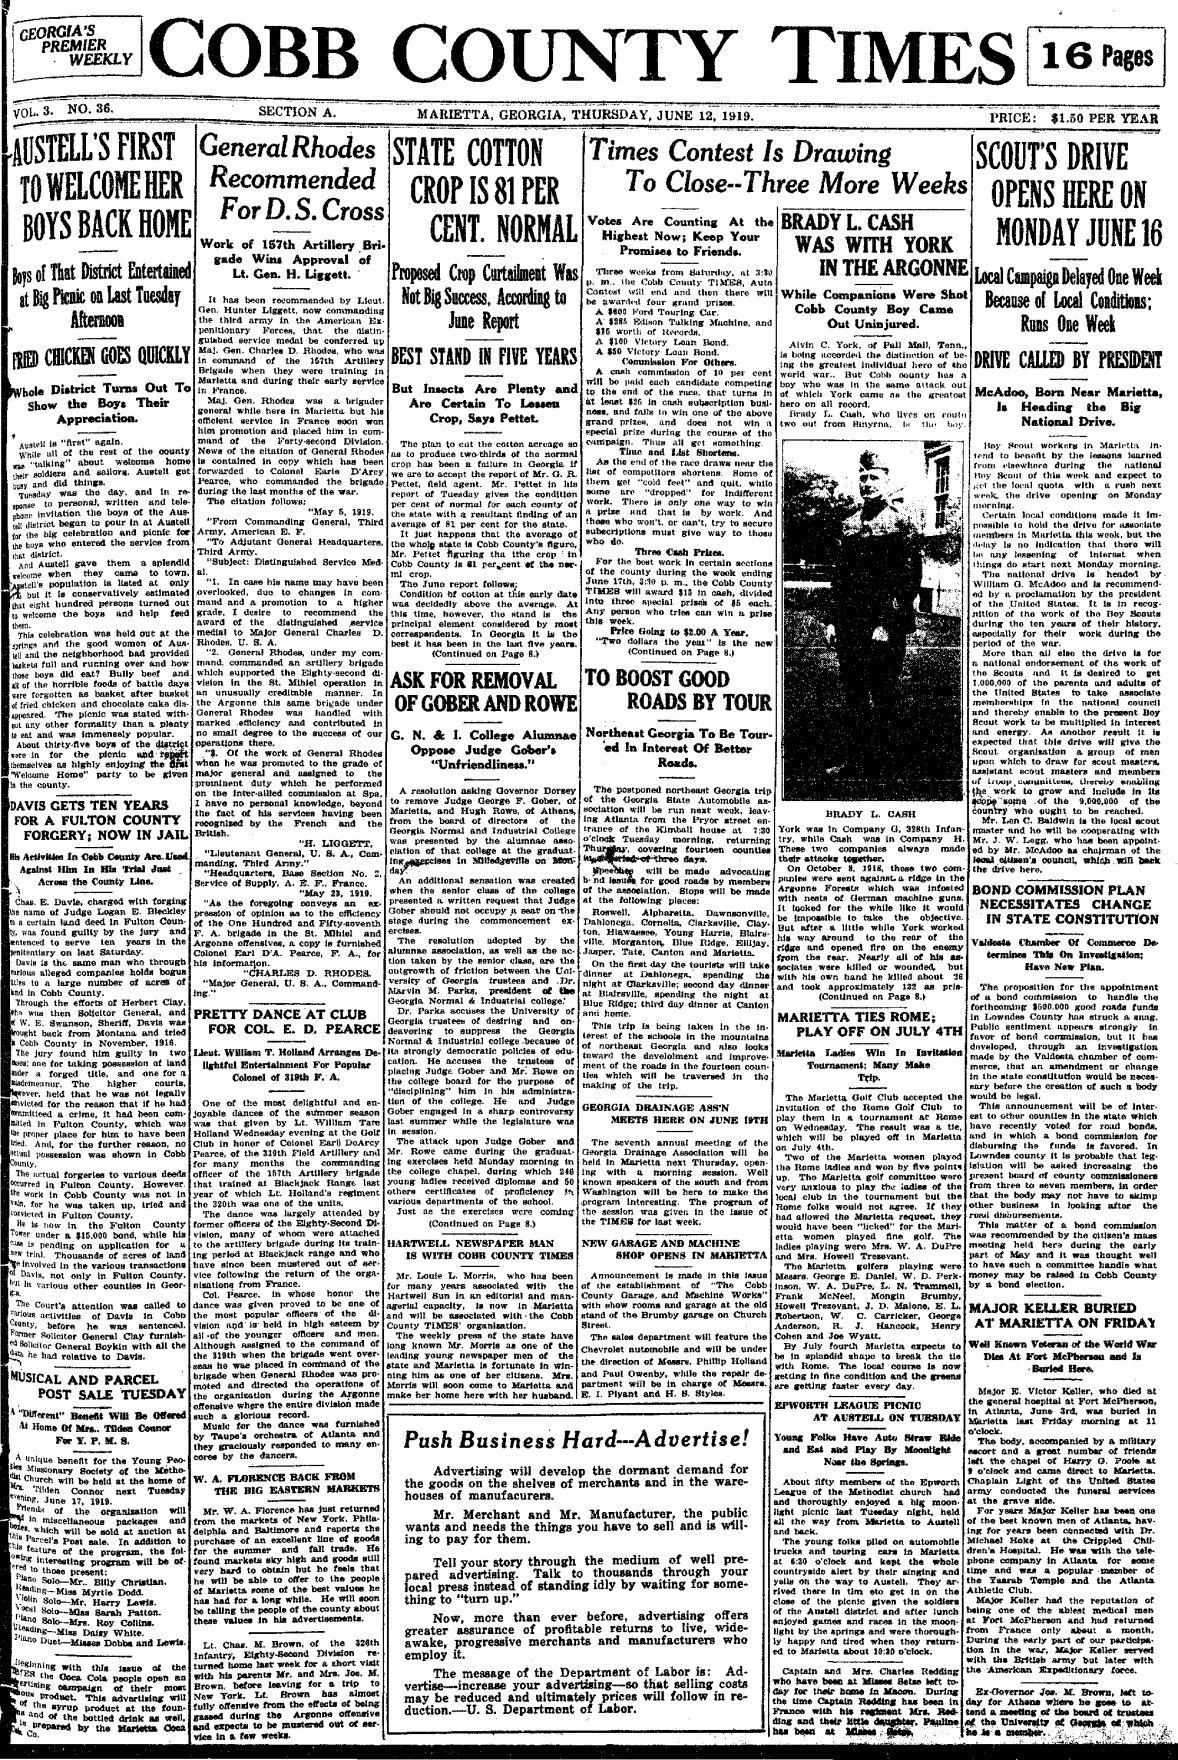 061619_MDJ_Time_Capsule_06121919_TIMES_Front